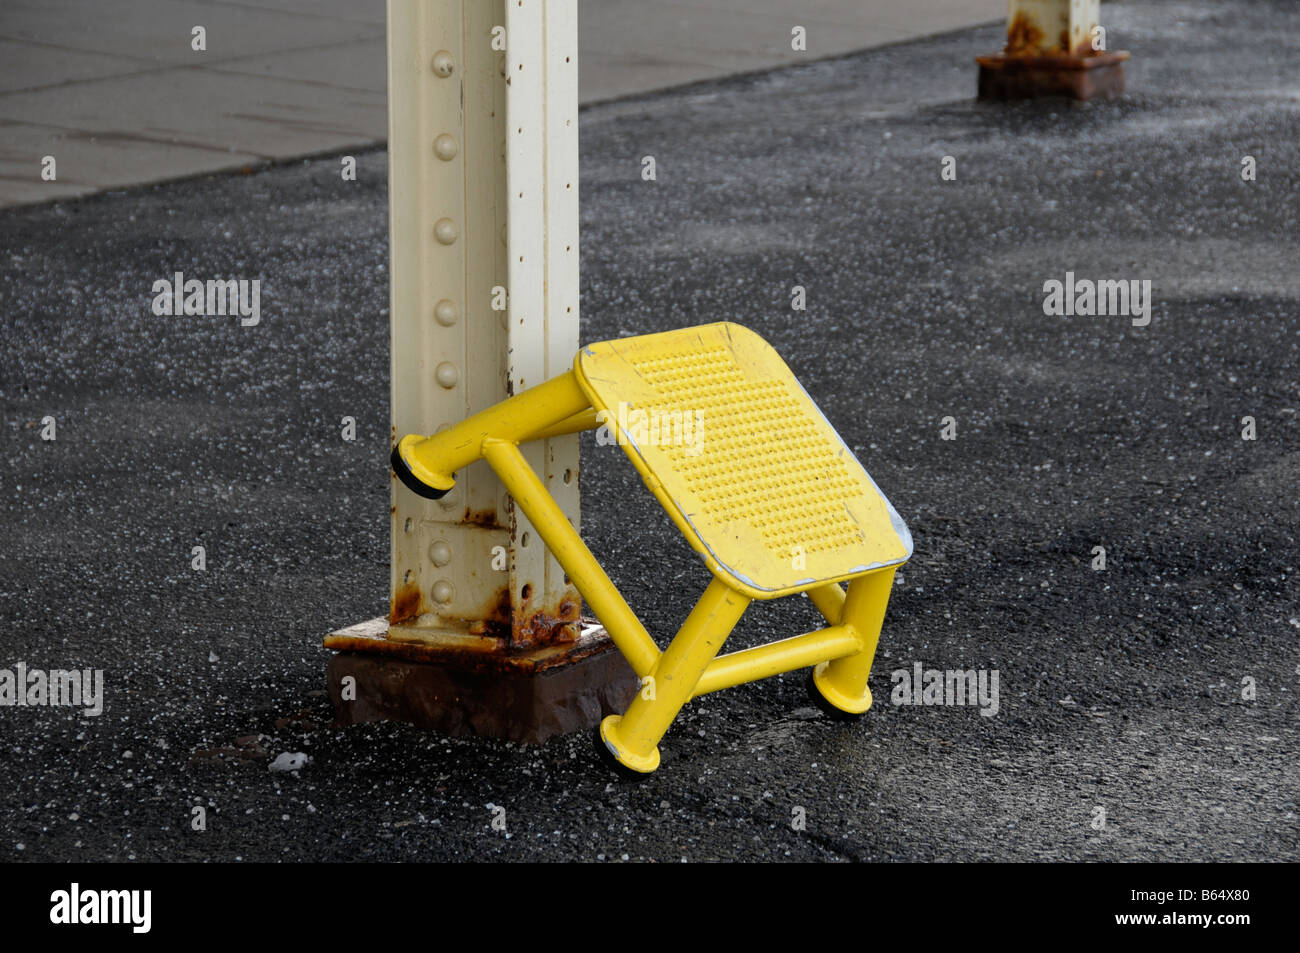 Stock Photo - Yellow step stool at train station & Yellow step stool at train station Stock Photo Royalty Free Image ... islam-shia.org